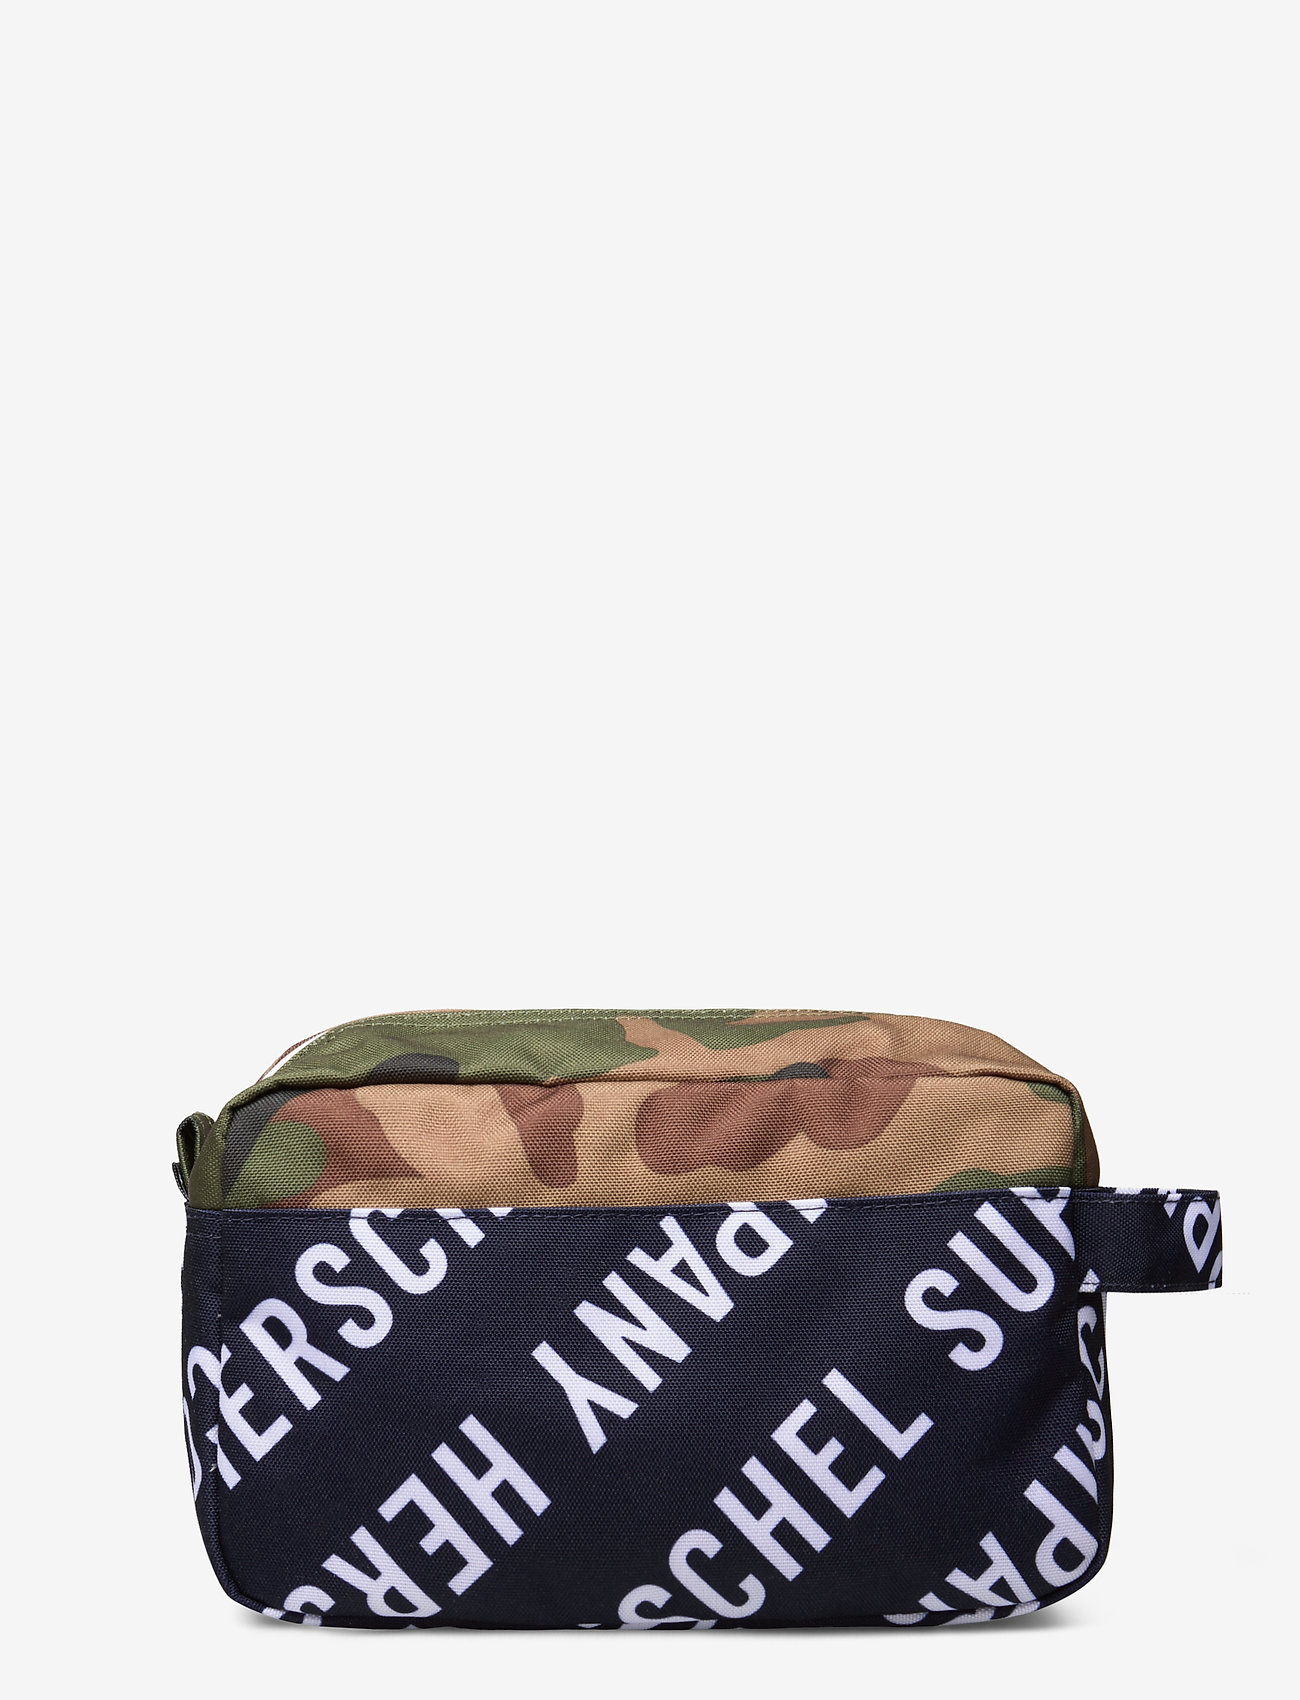 Herschel Chapter - Torby kosmetyczne ROLL CALL PEACOAT/WOODLAND CAM - Torby